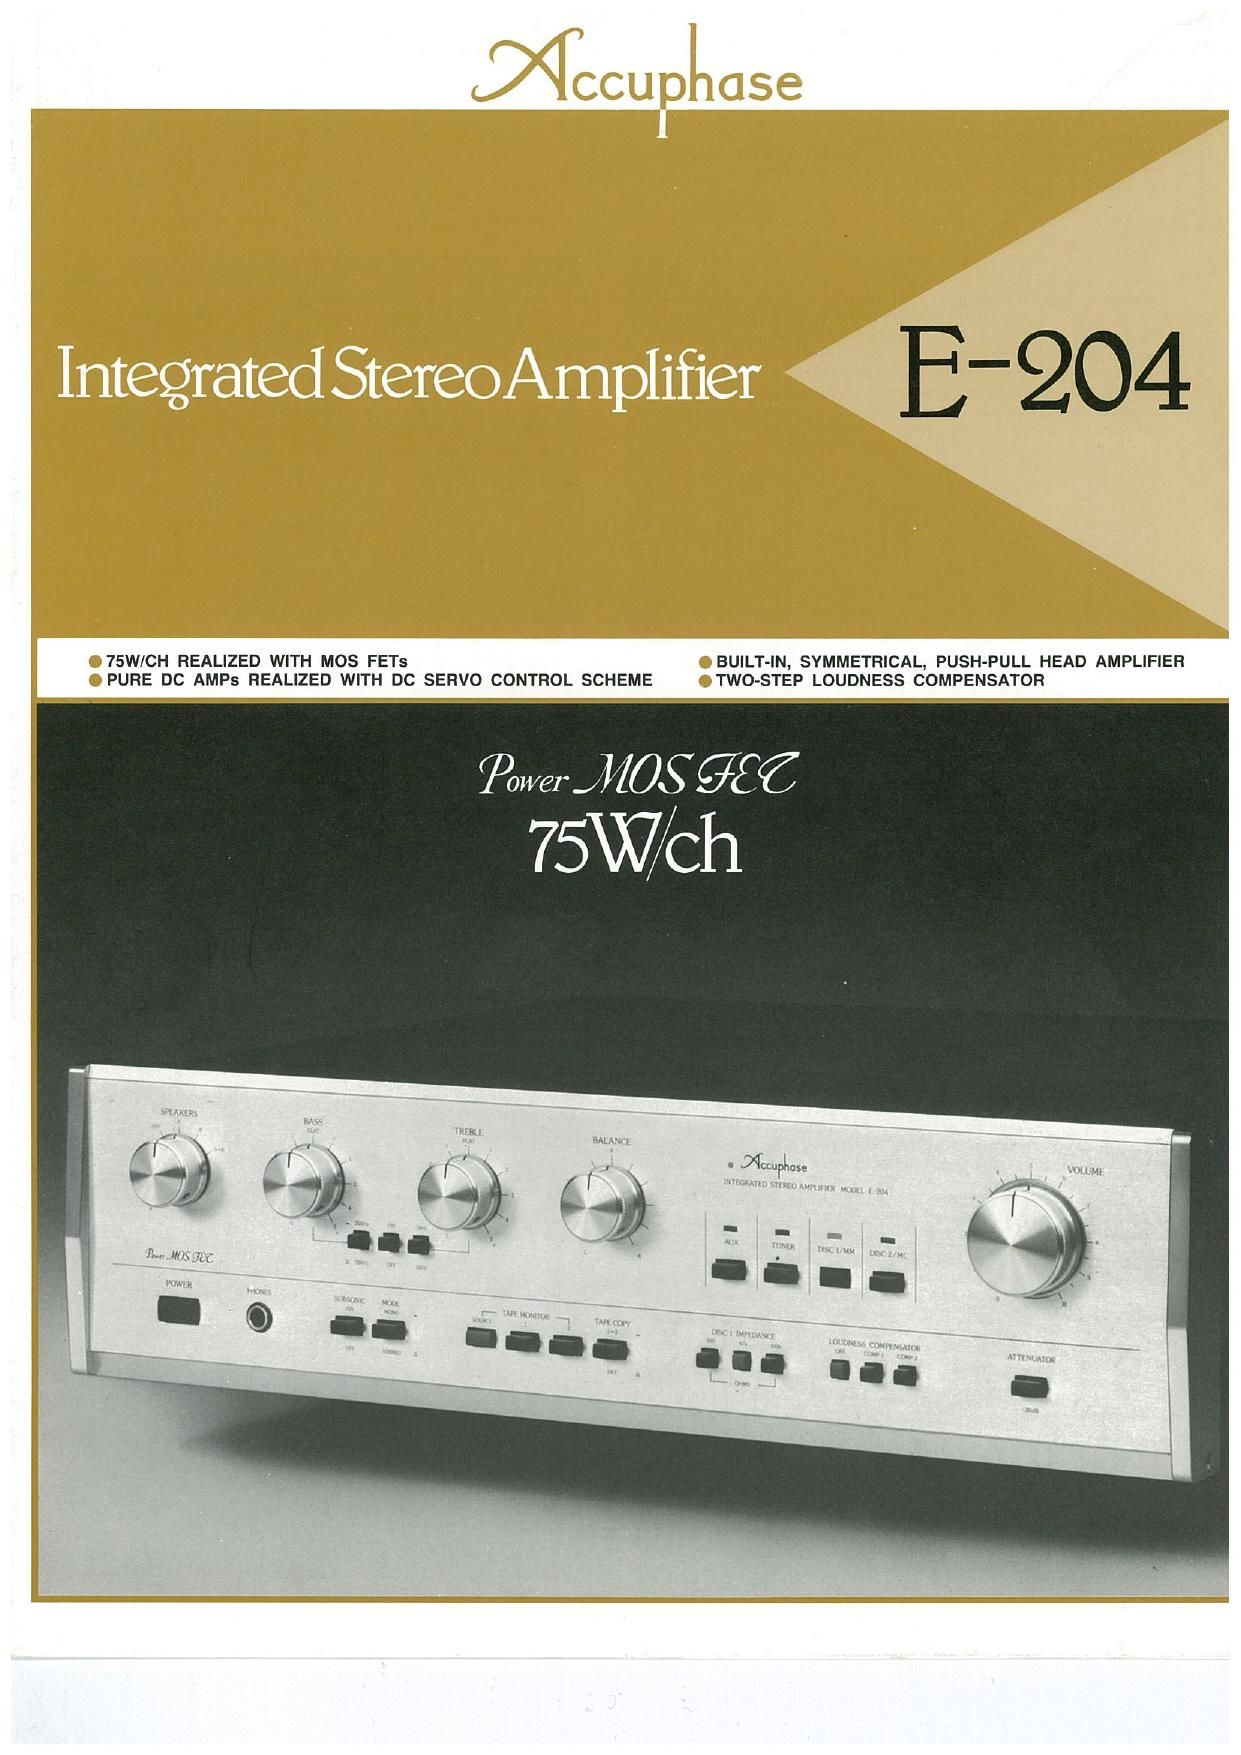 Accuphase E 204 Brochure